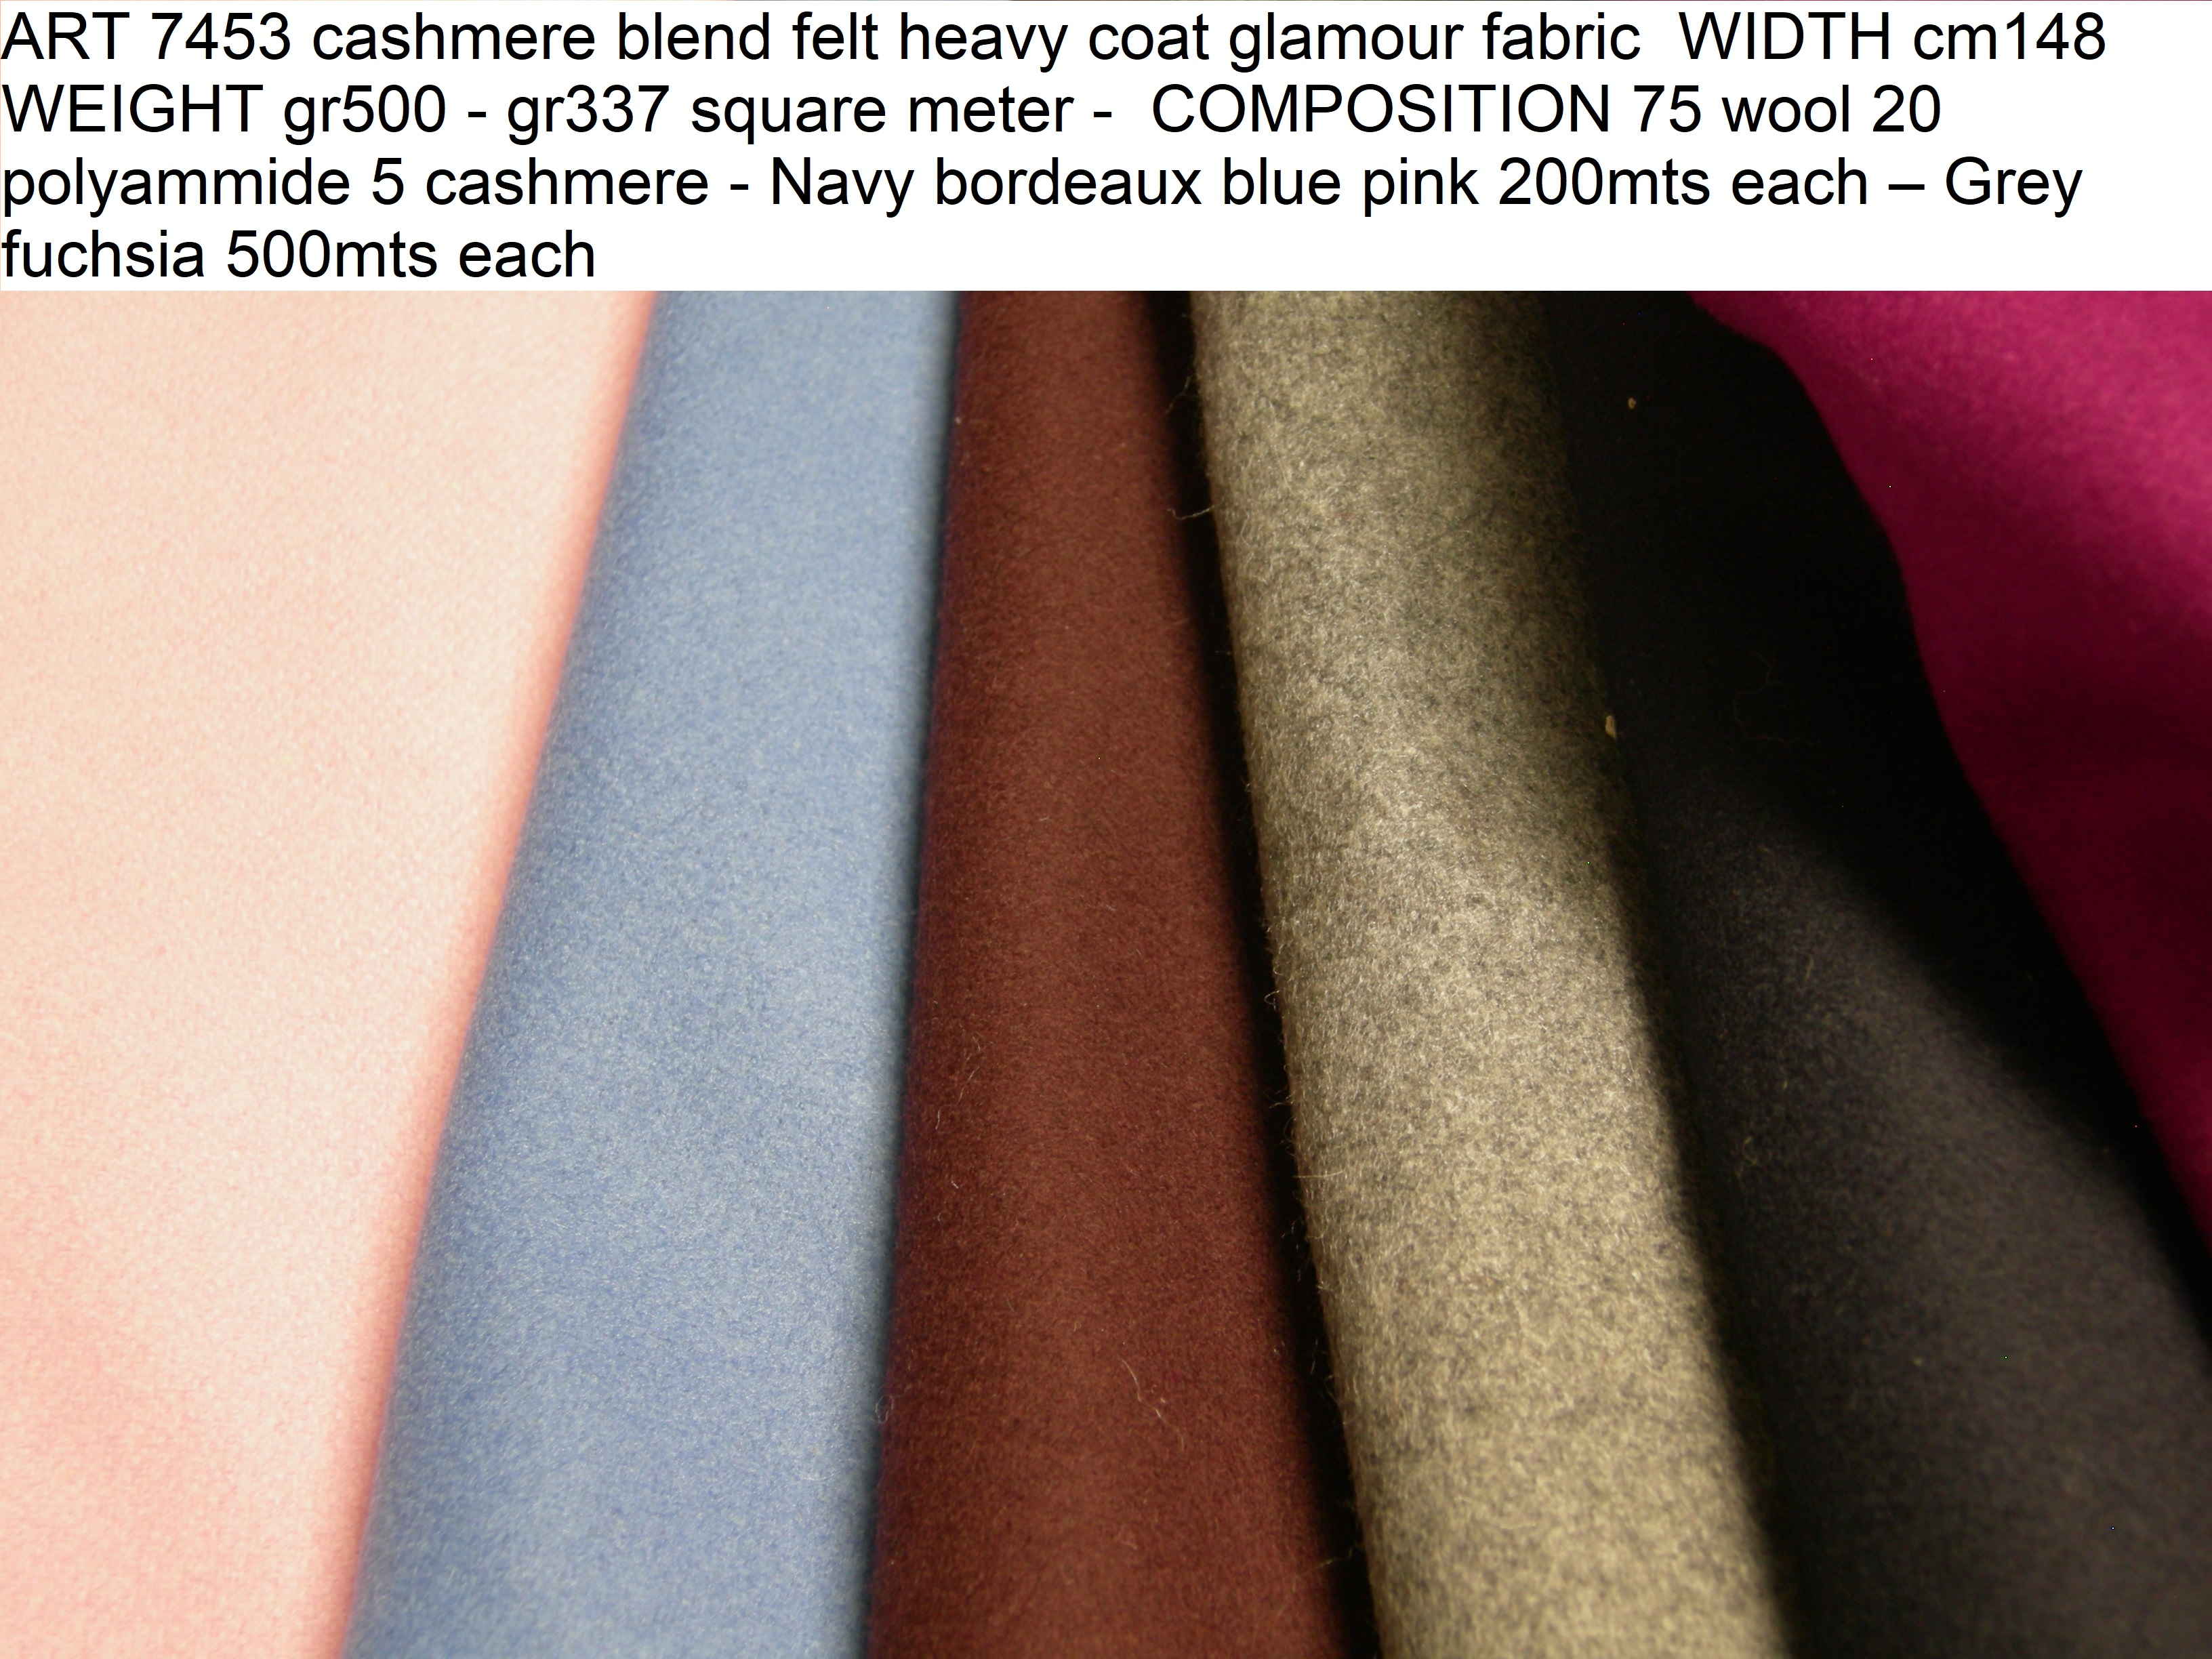 ART 7453 WIDTH cm148 WEIGHT gr500 - gr337 square meter - COMPOSITION 75 wool 20 polyammide 5 cashmere - Navy bordeaux blue pink 200mts each – Grey fuchsia 500mts each